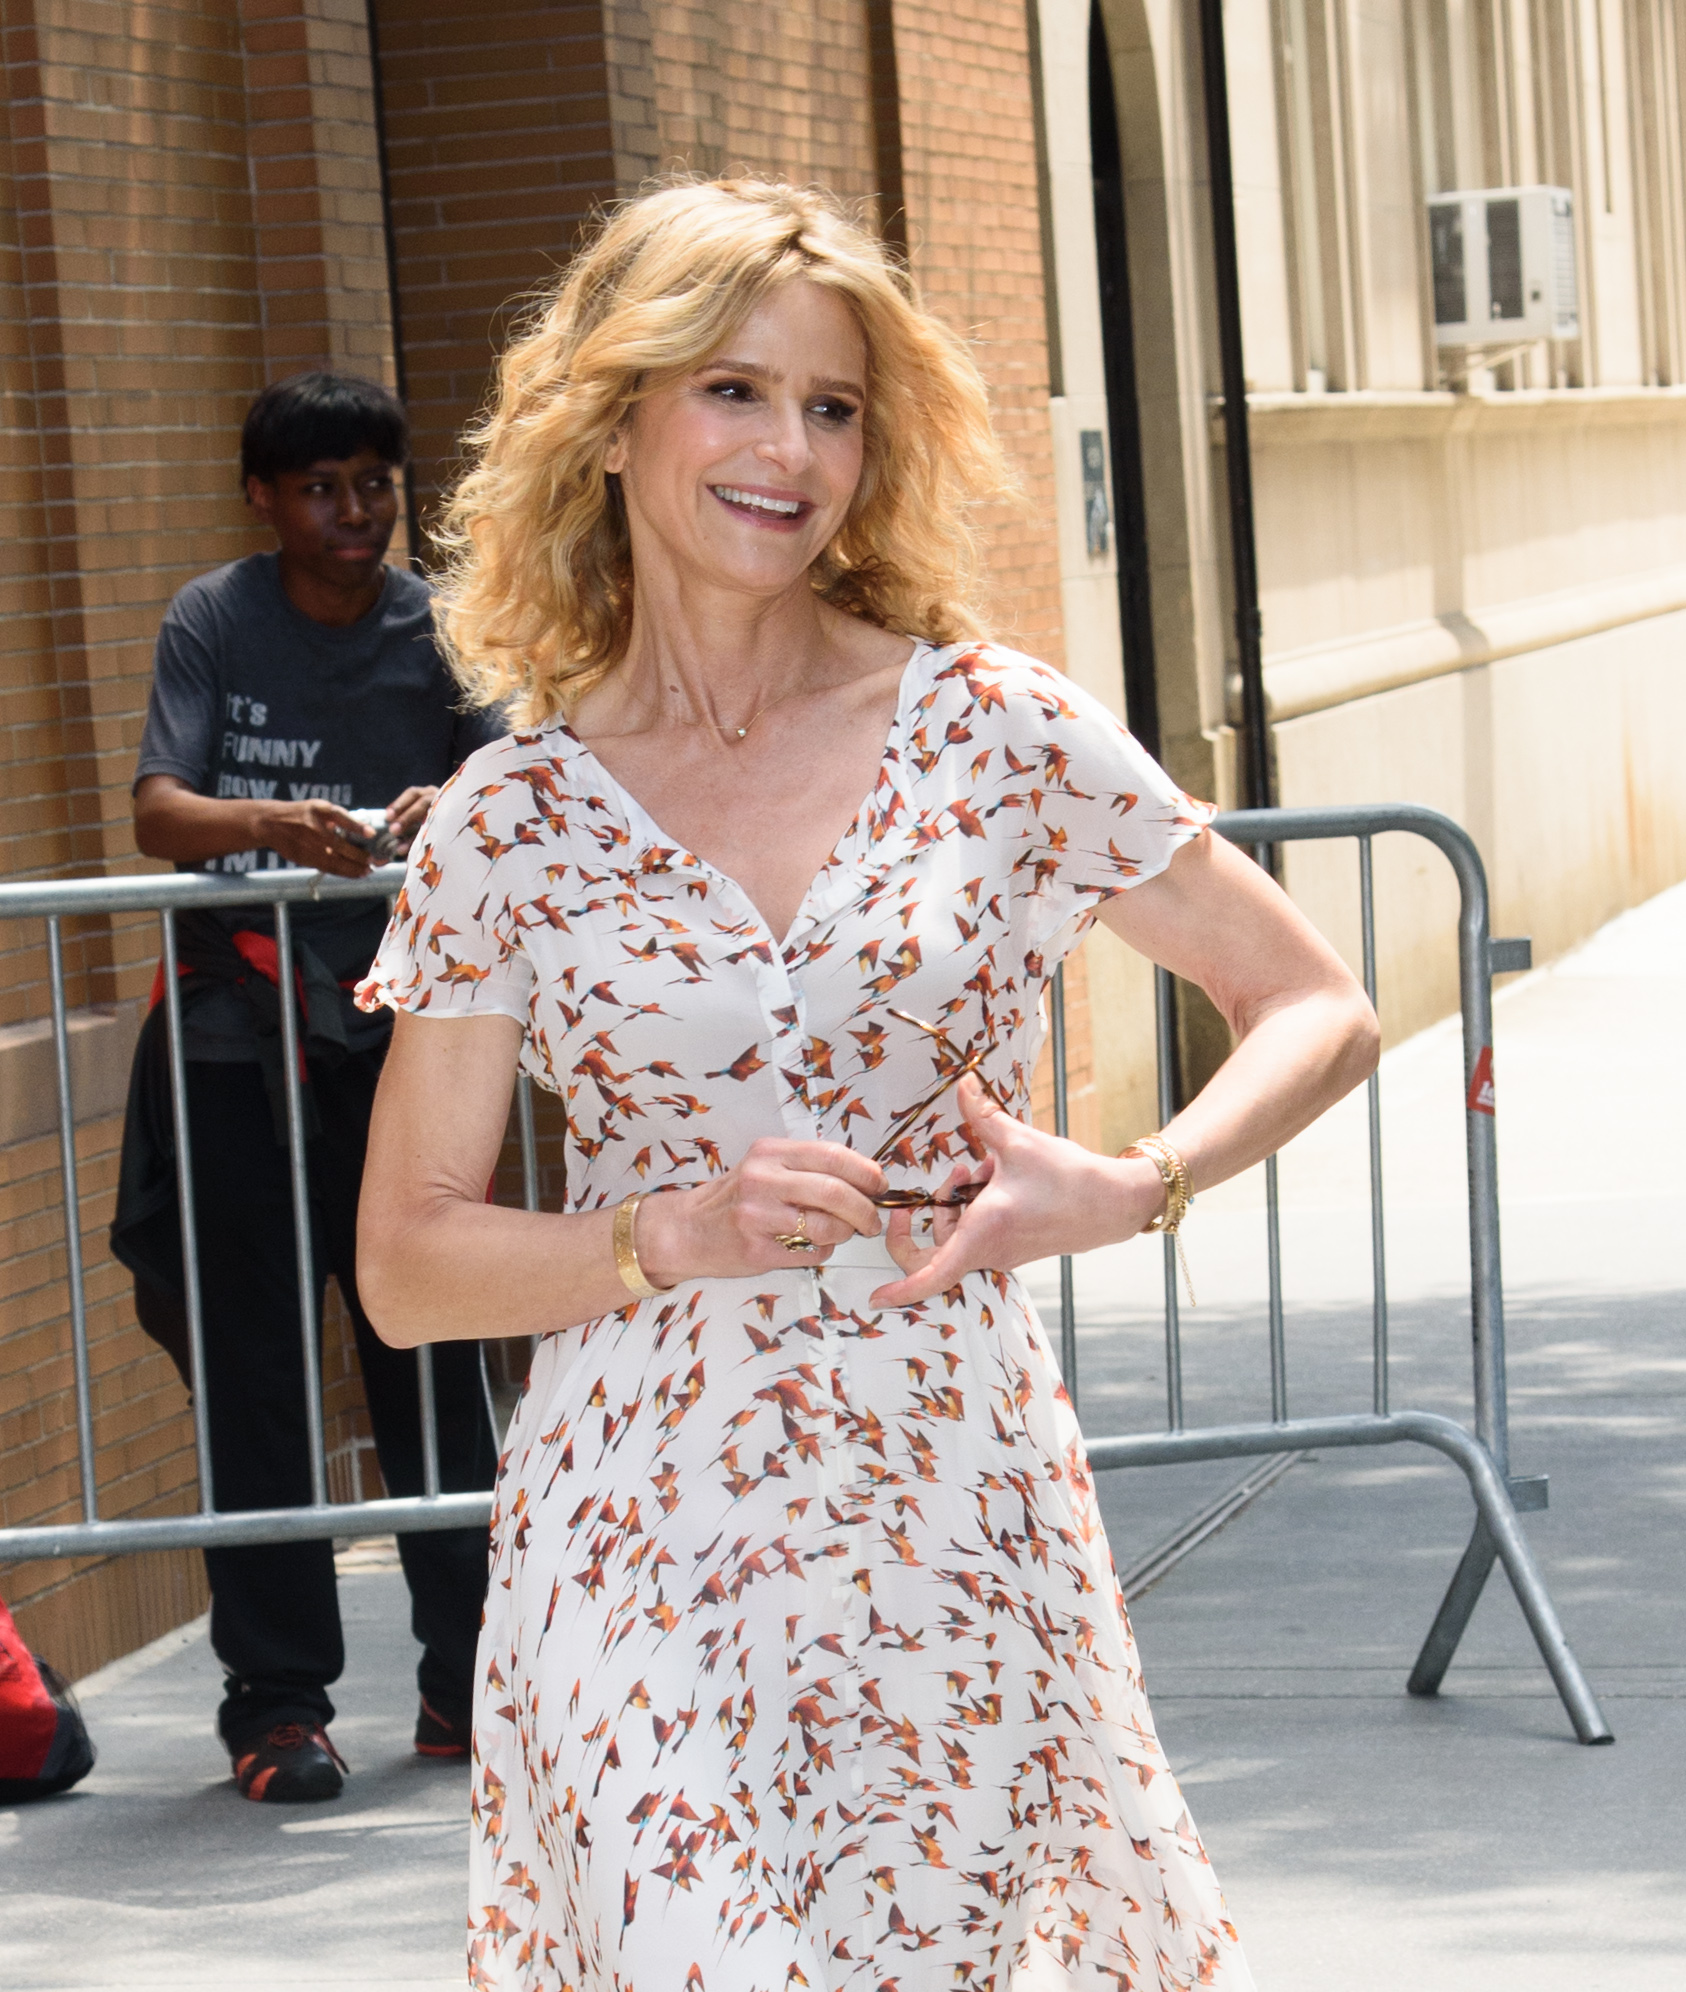 Celebs at The View  Featuring: Kyra Sedgwick Where: New York, New York, United States When: 18 Jul 2017 Credit: WENN.com